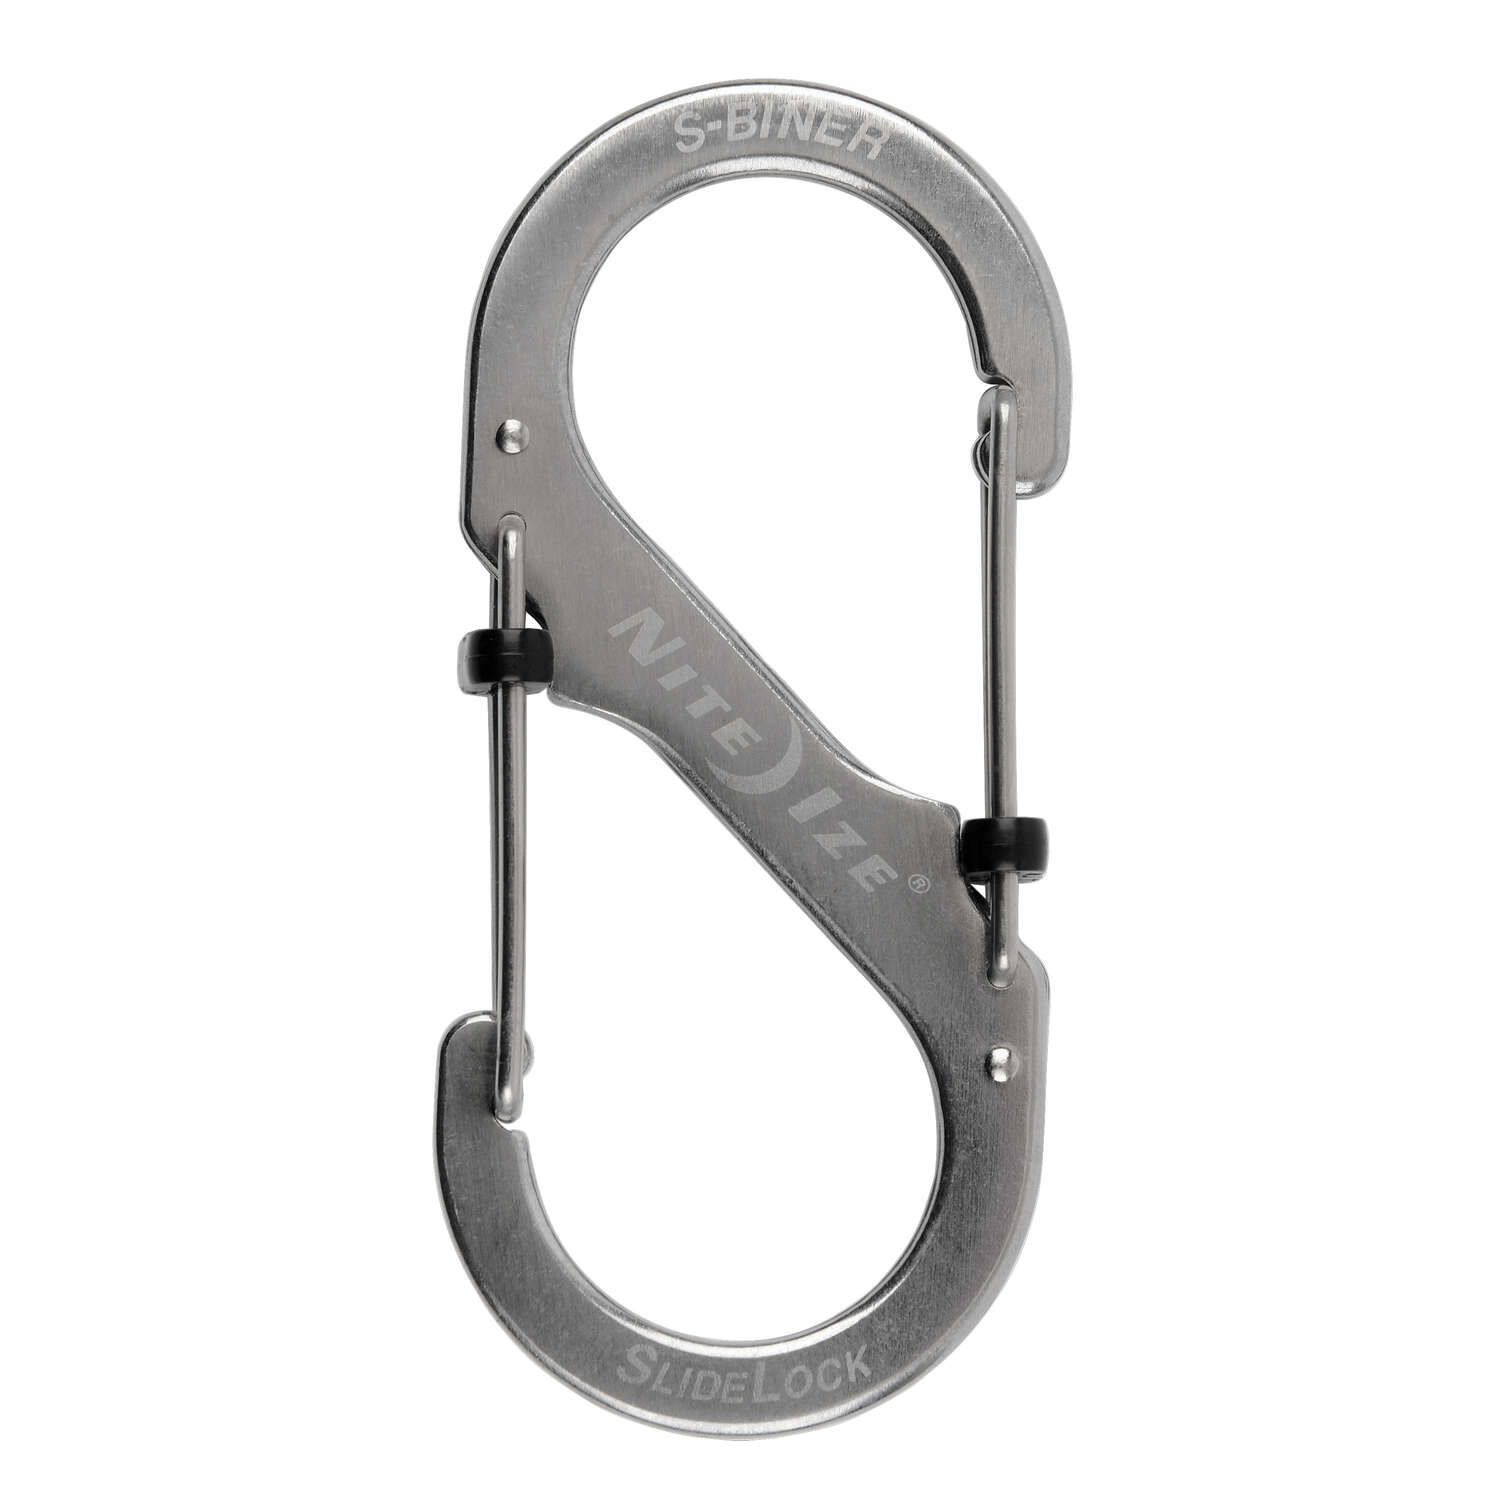 Nite Ize  S-Biner SlideLock  1.8 in. Dia. Stainless Steel  Silver  Carabiner  Key Holder